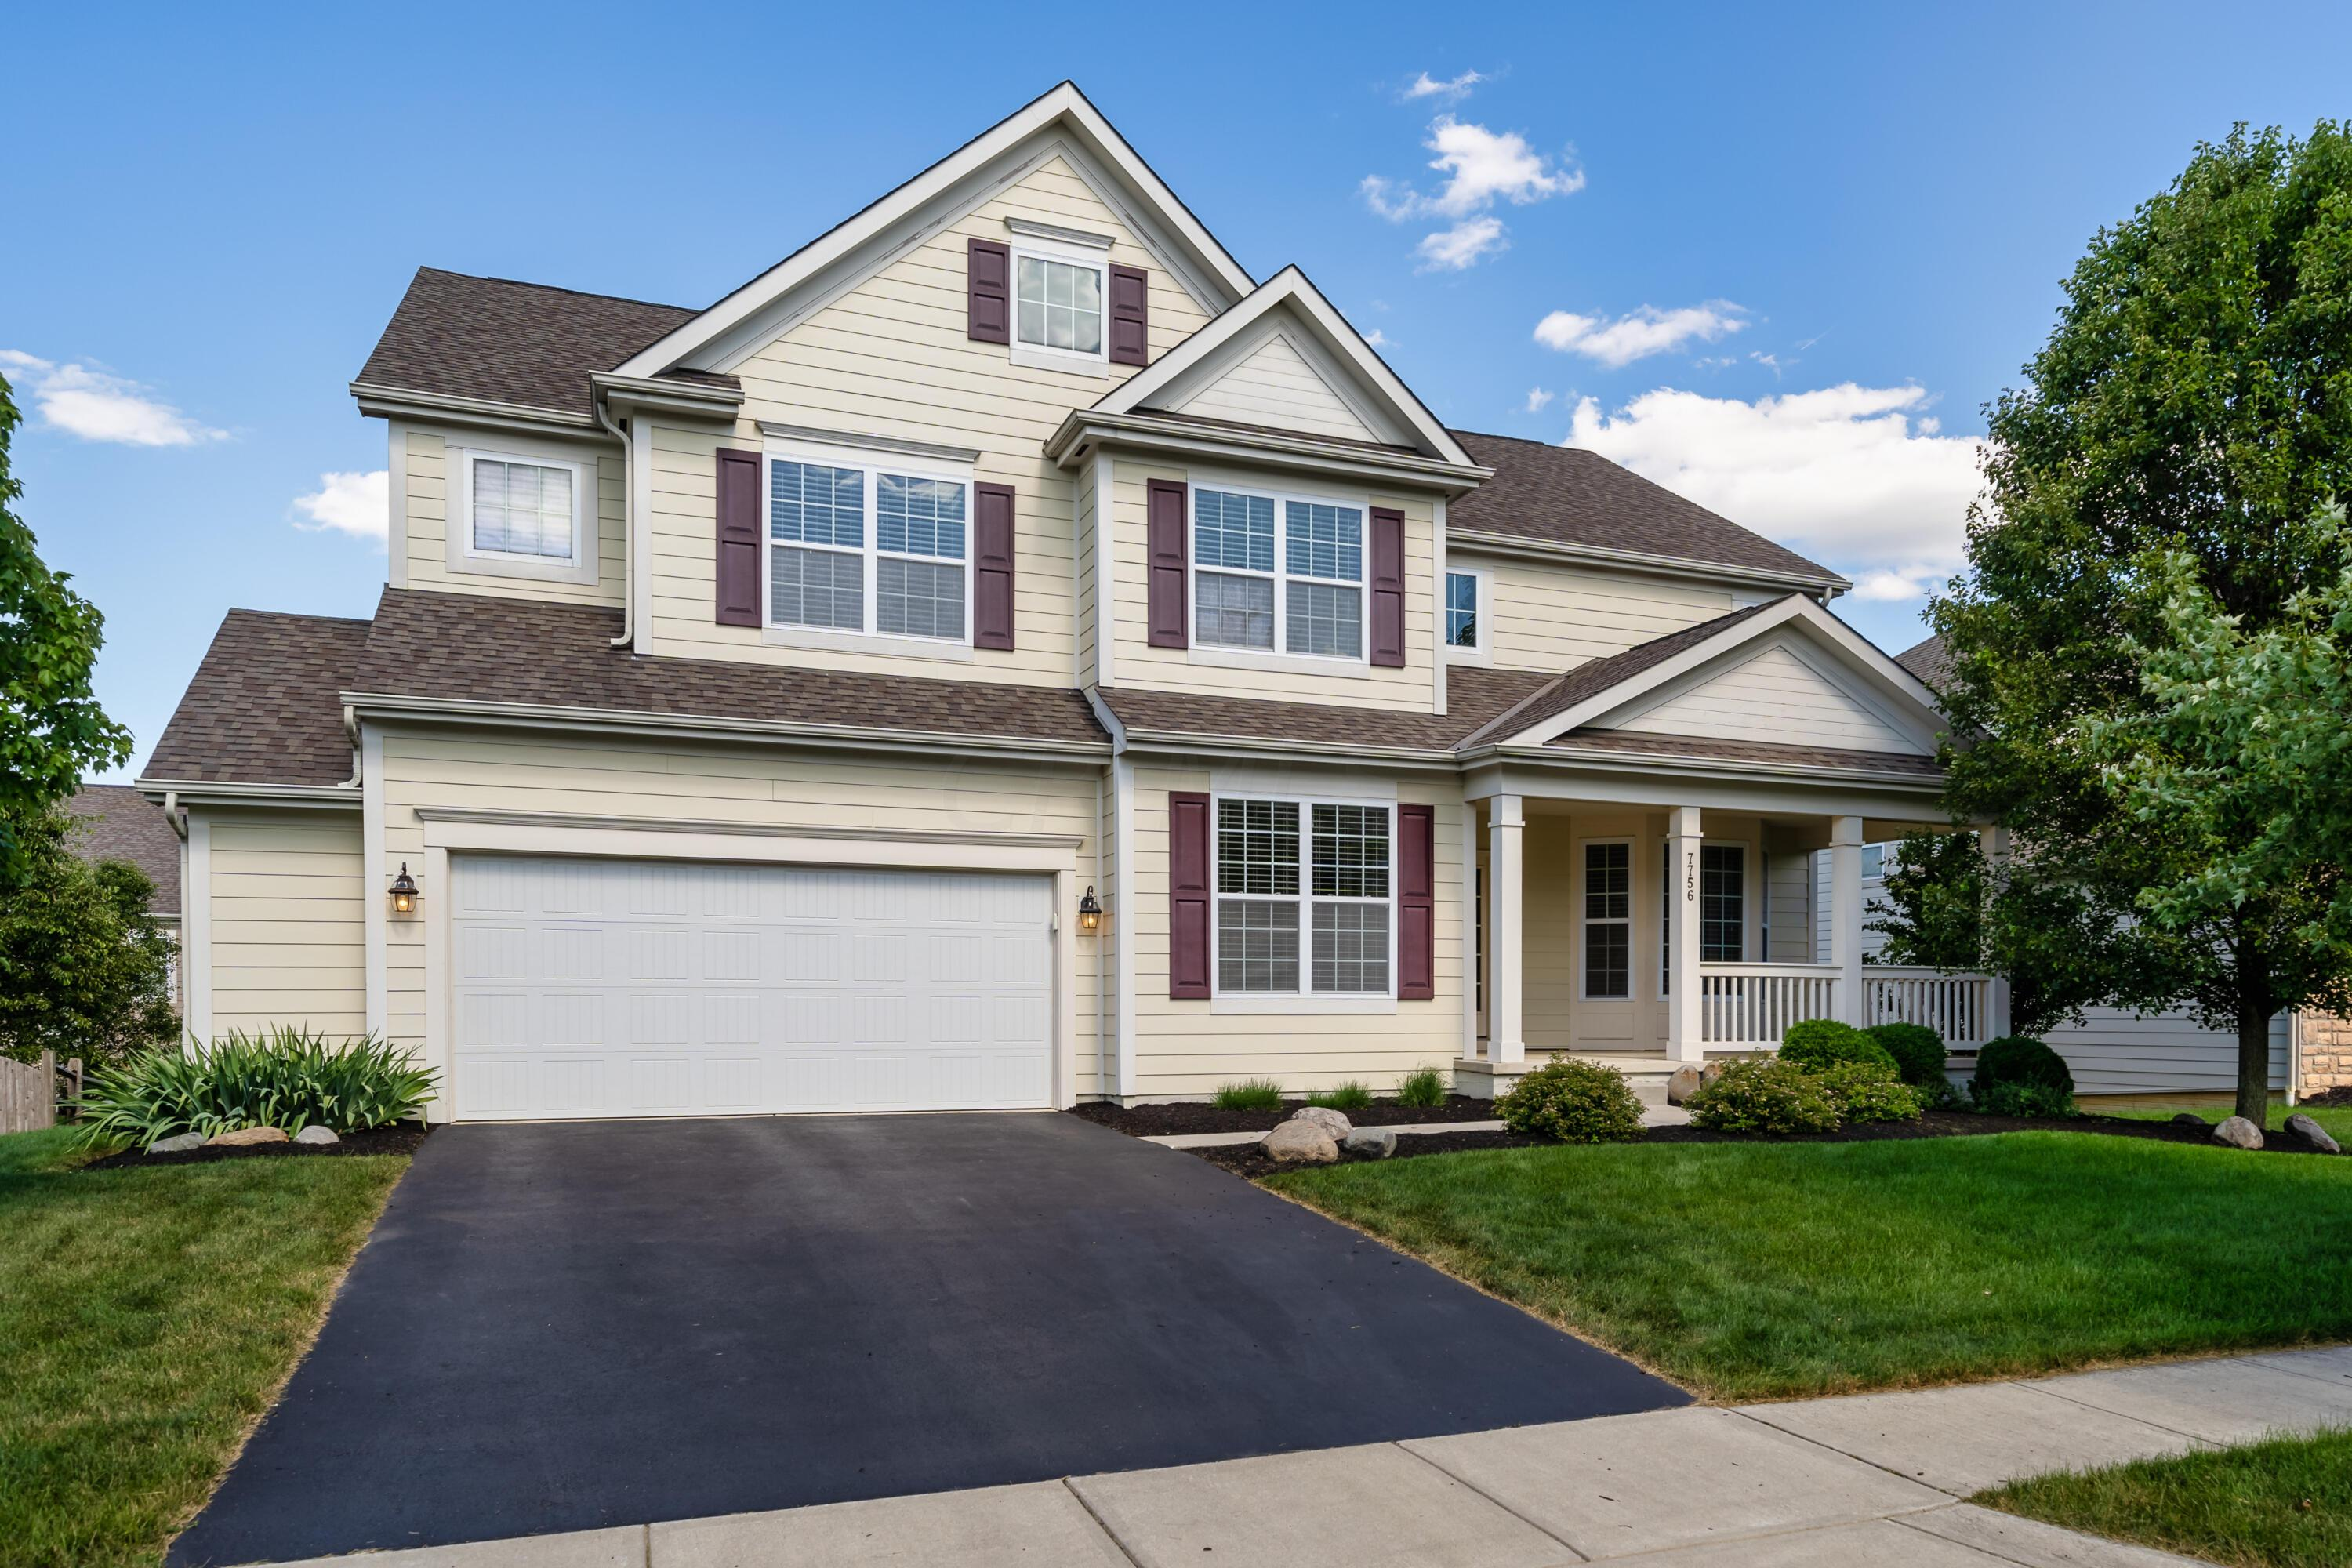 Photo of 7756 Mellacent Drive, Columbus, OH 43235